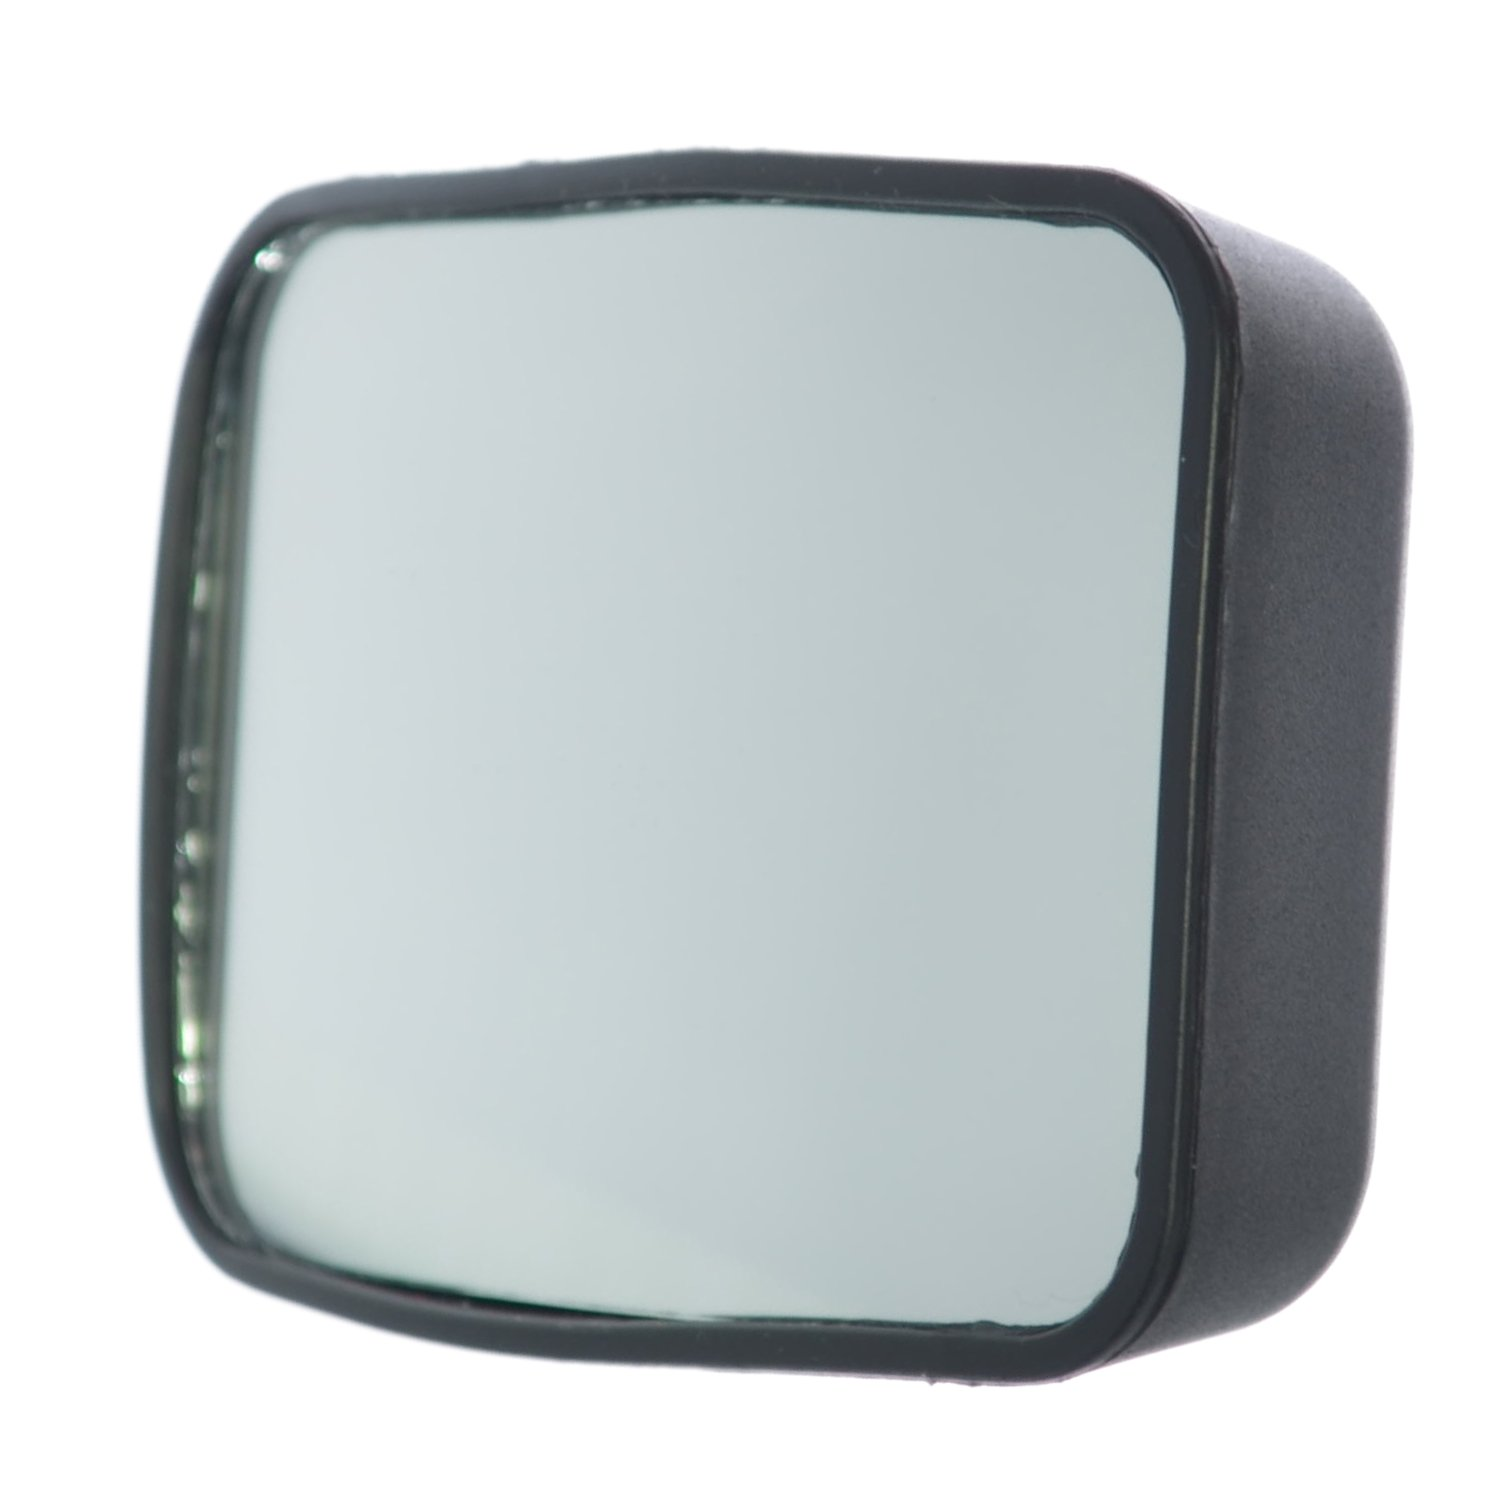 Truck Blind Spot Mirror Attaches to Side Mirrors 3.75x2.5 3.75x2.5 703 Majic Wedge Convex Wide Angle 150 Degree Rear View Car